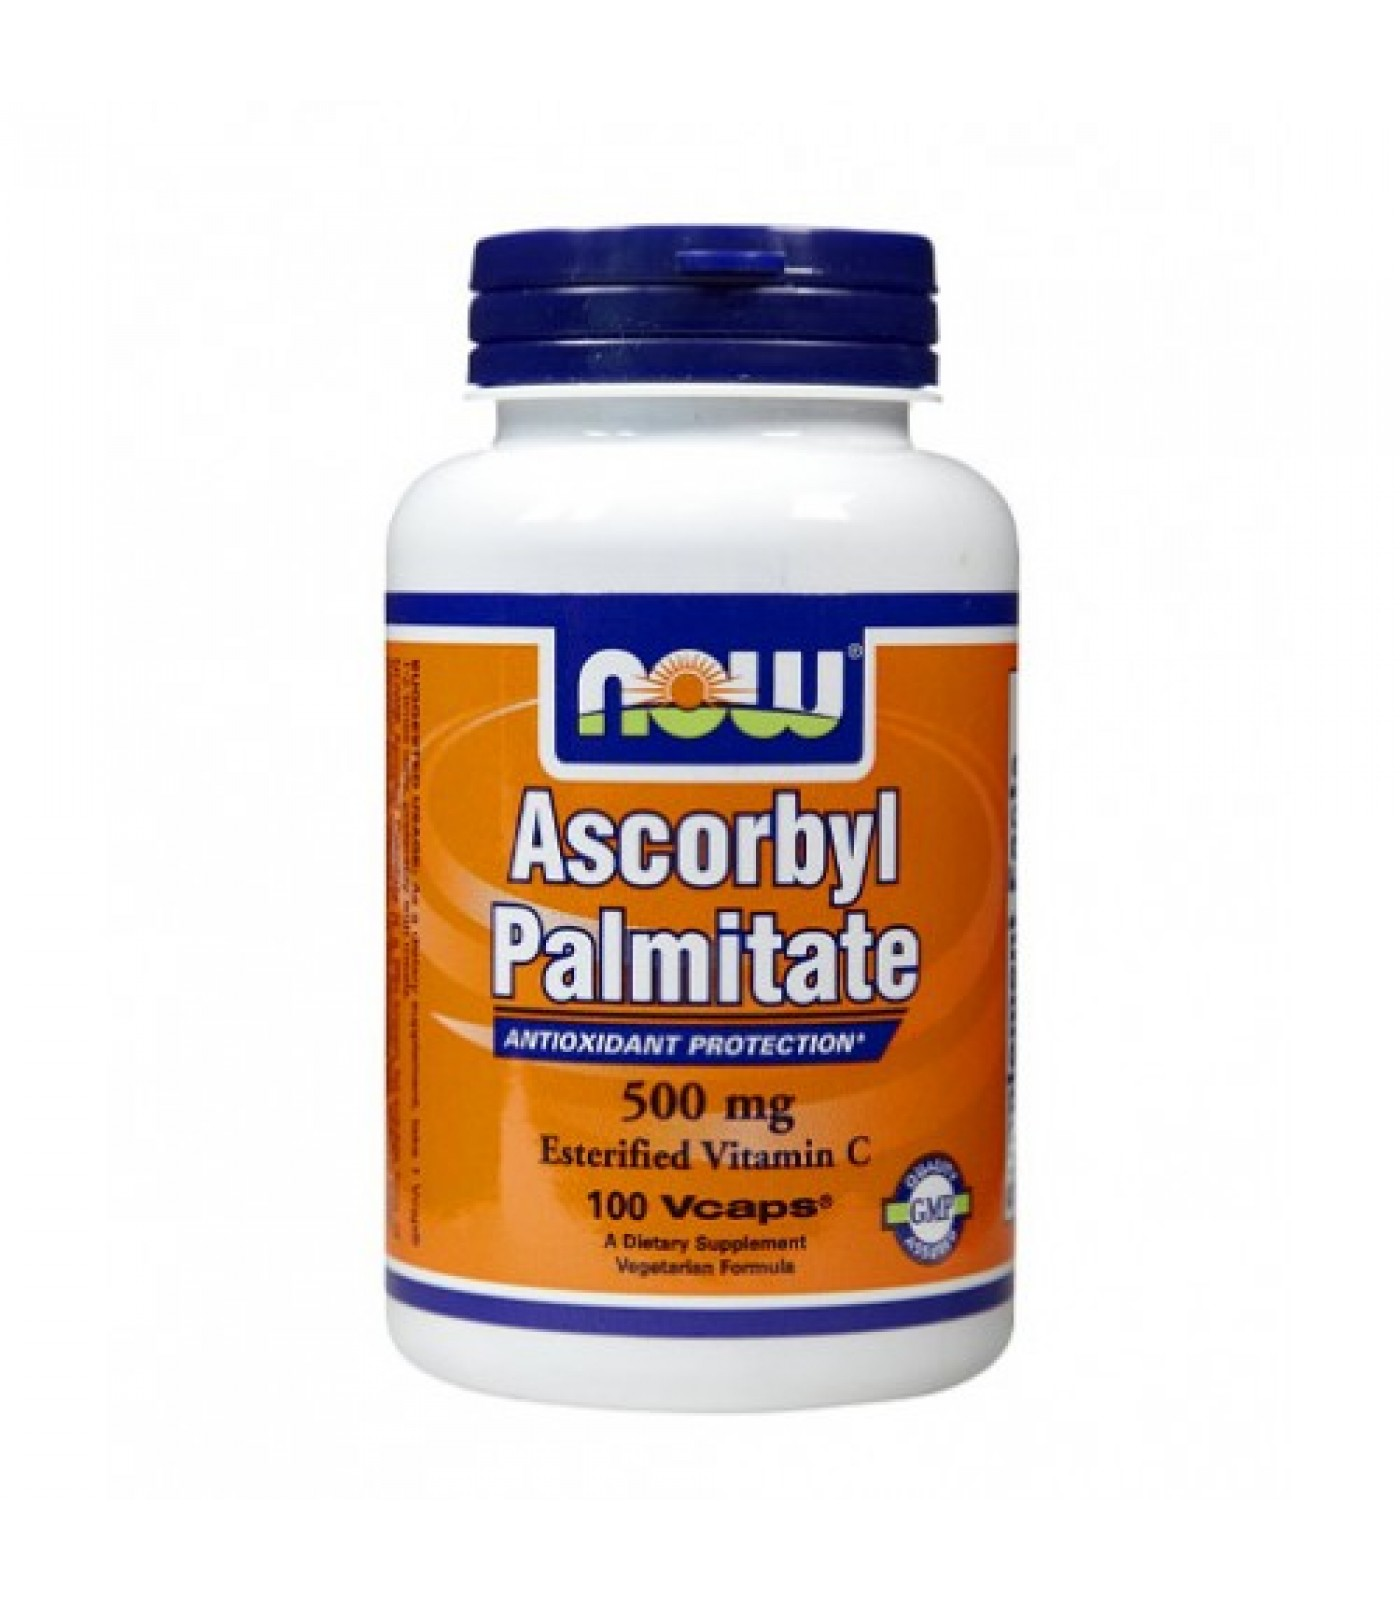 NOW - Ascorbyl Palmitate 500mg. / 100 Vcaps.